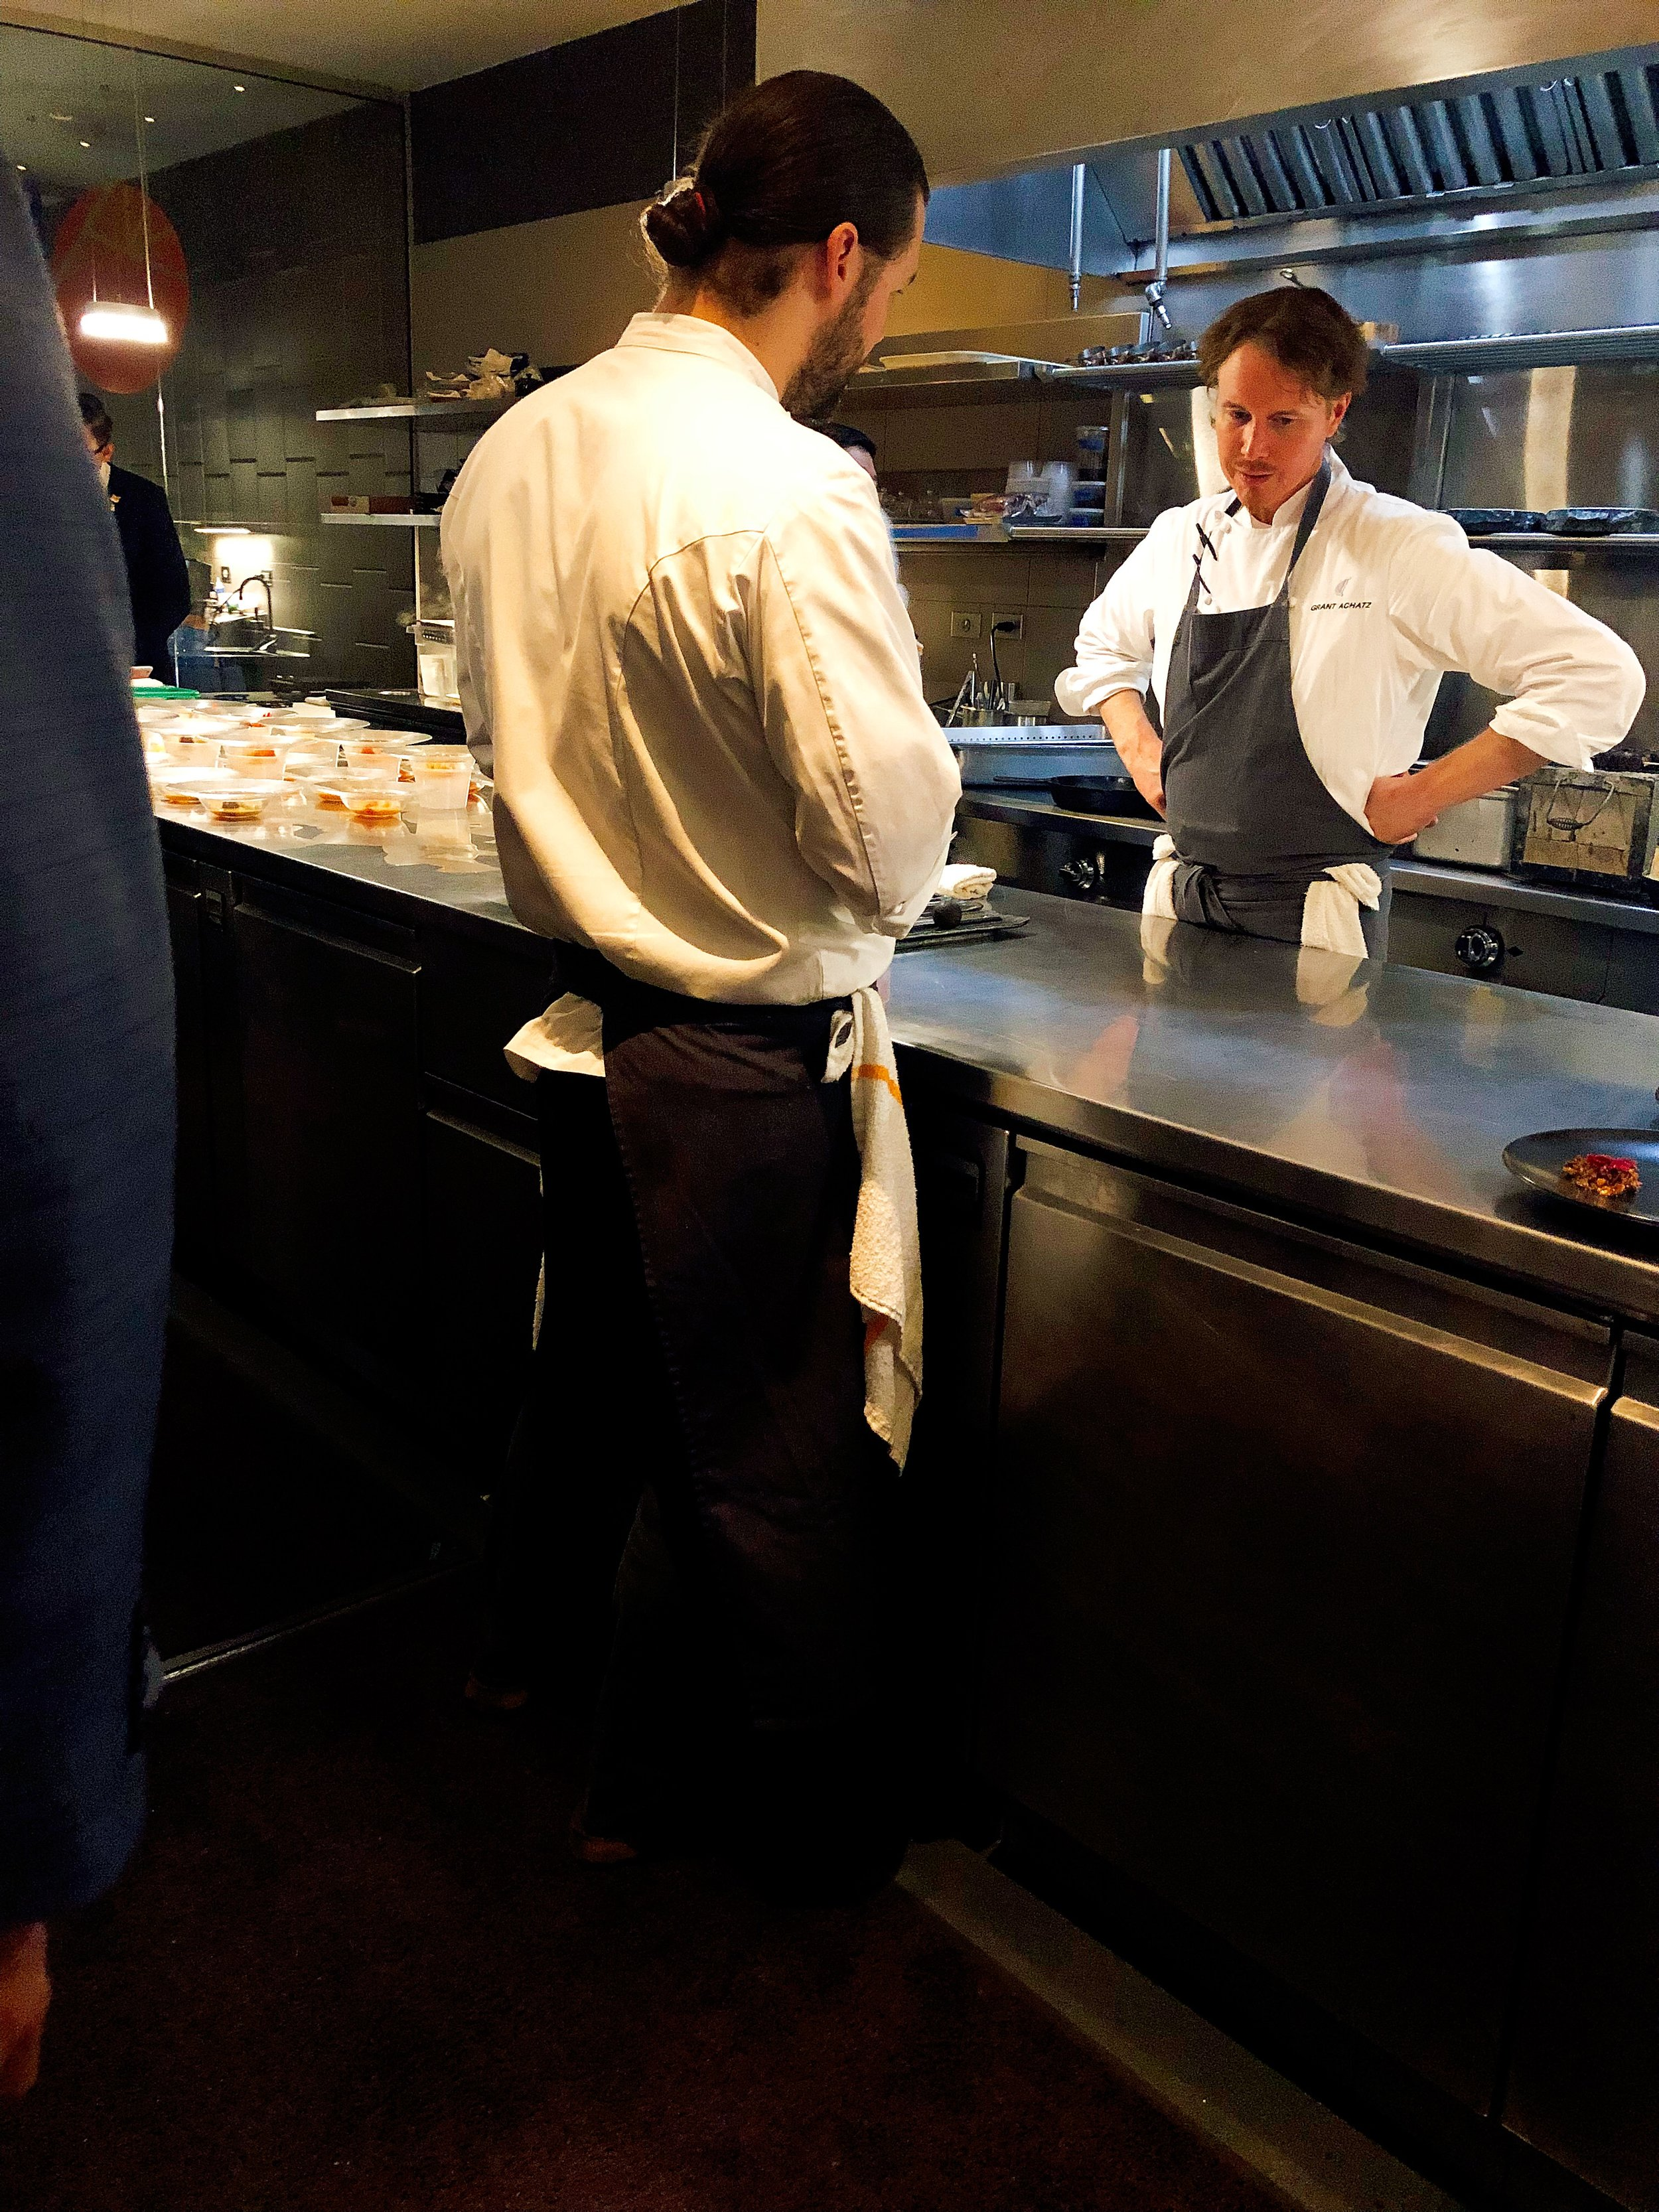 Alinea The Gastronomic Experience That Changed My